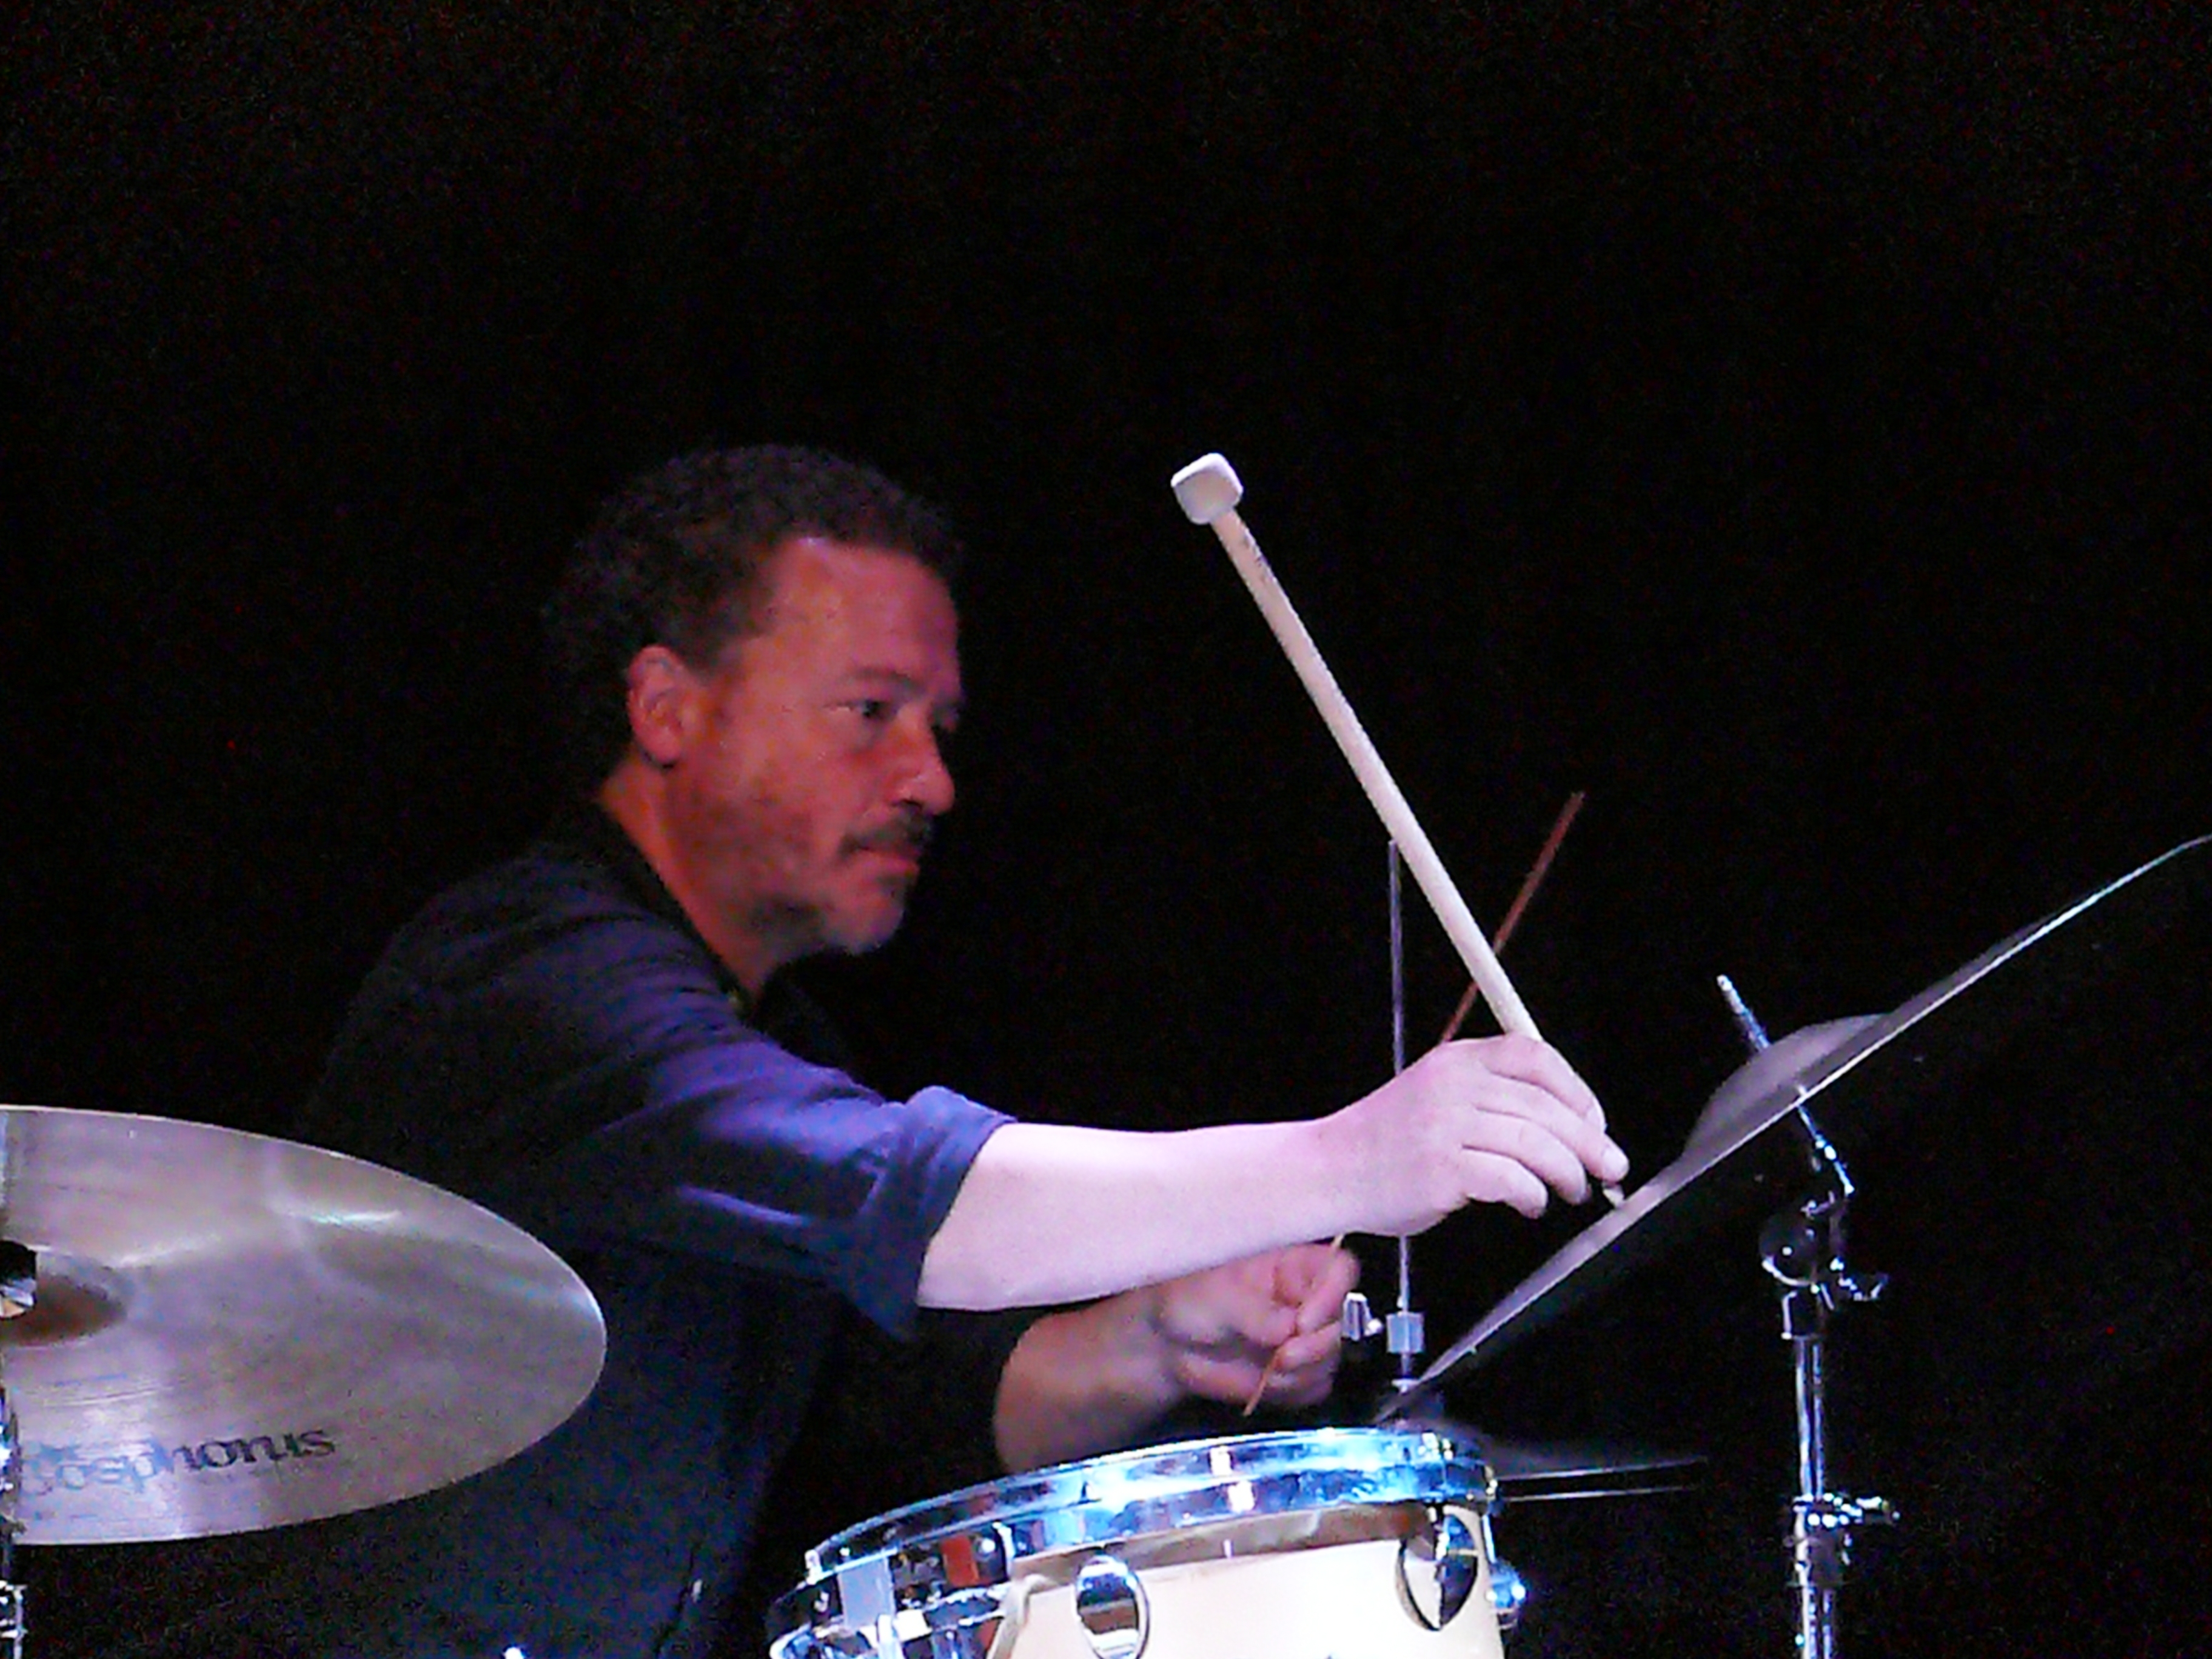 Mark Sanders at the Vortex, London in August 2017